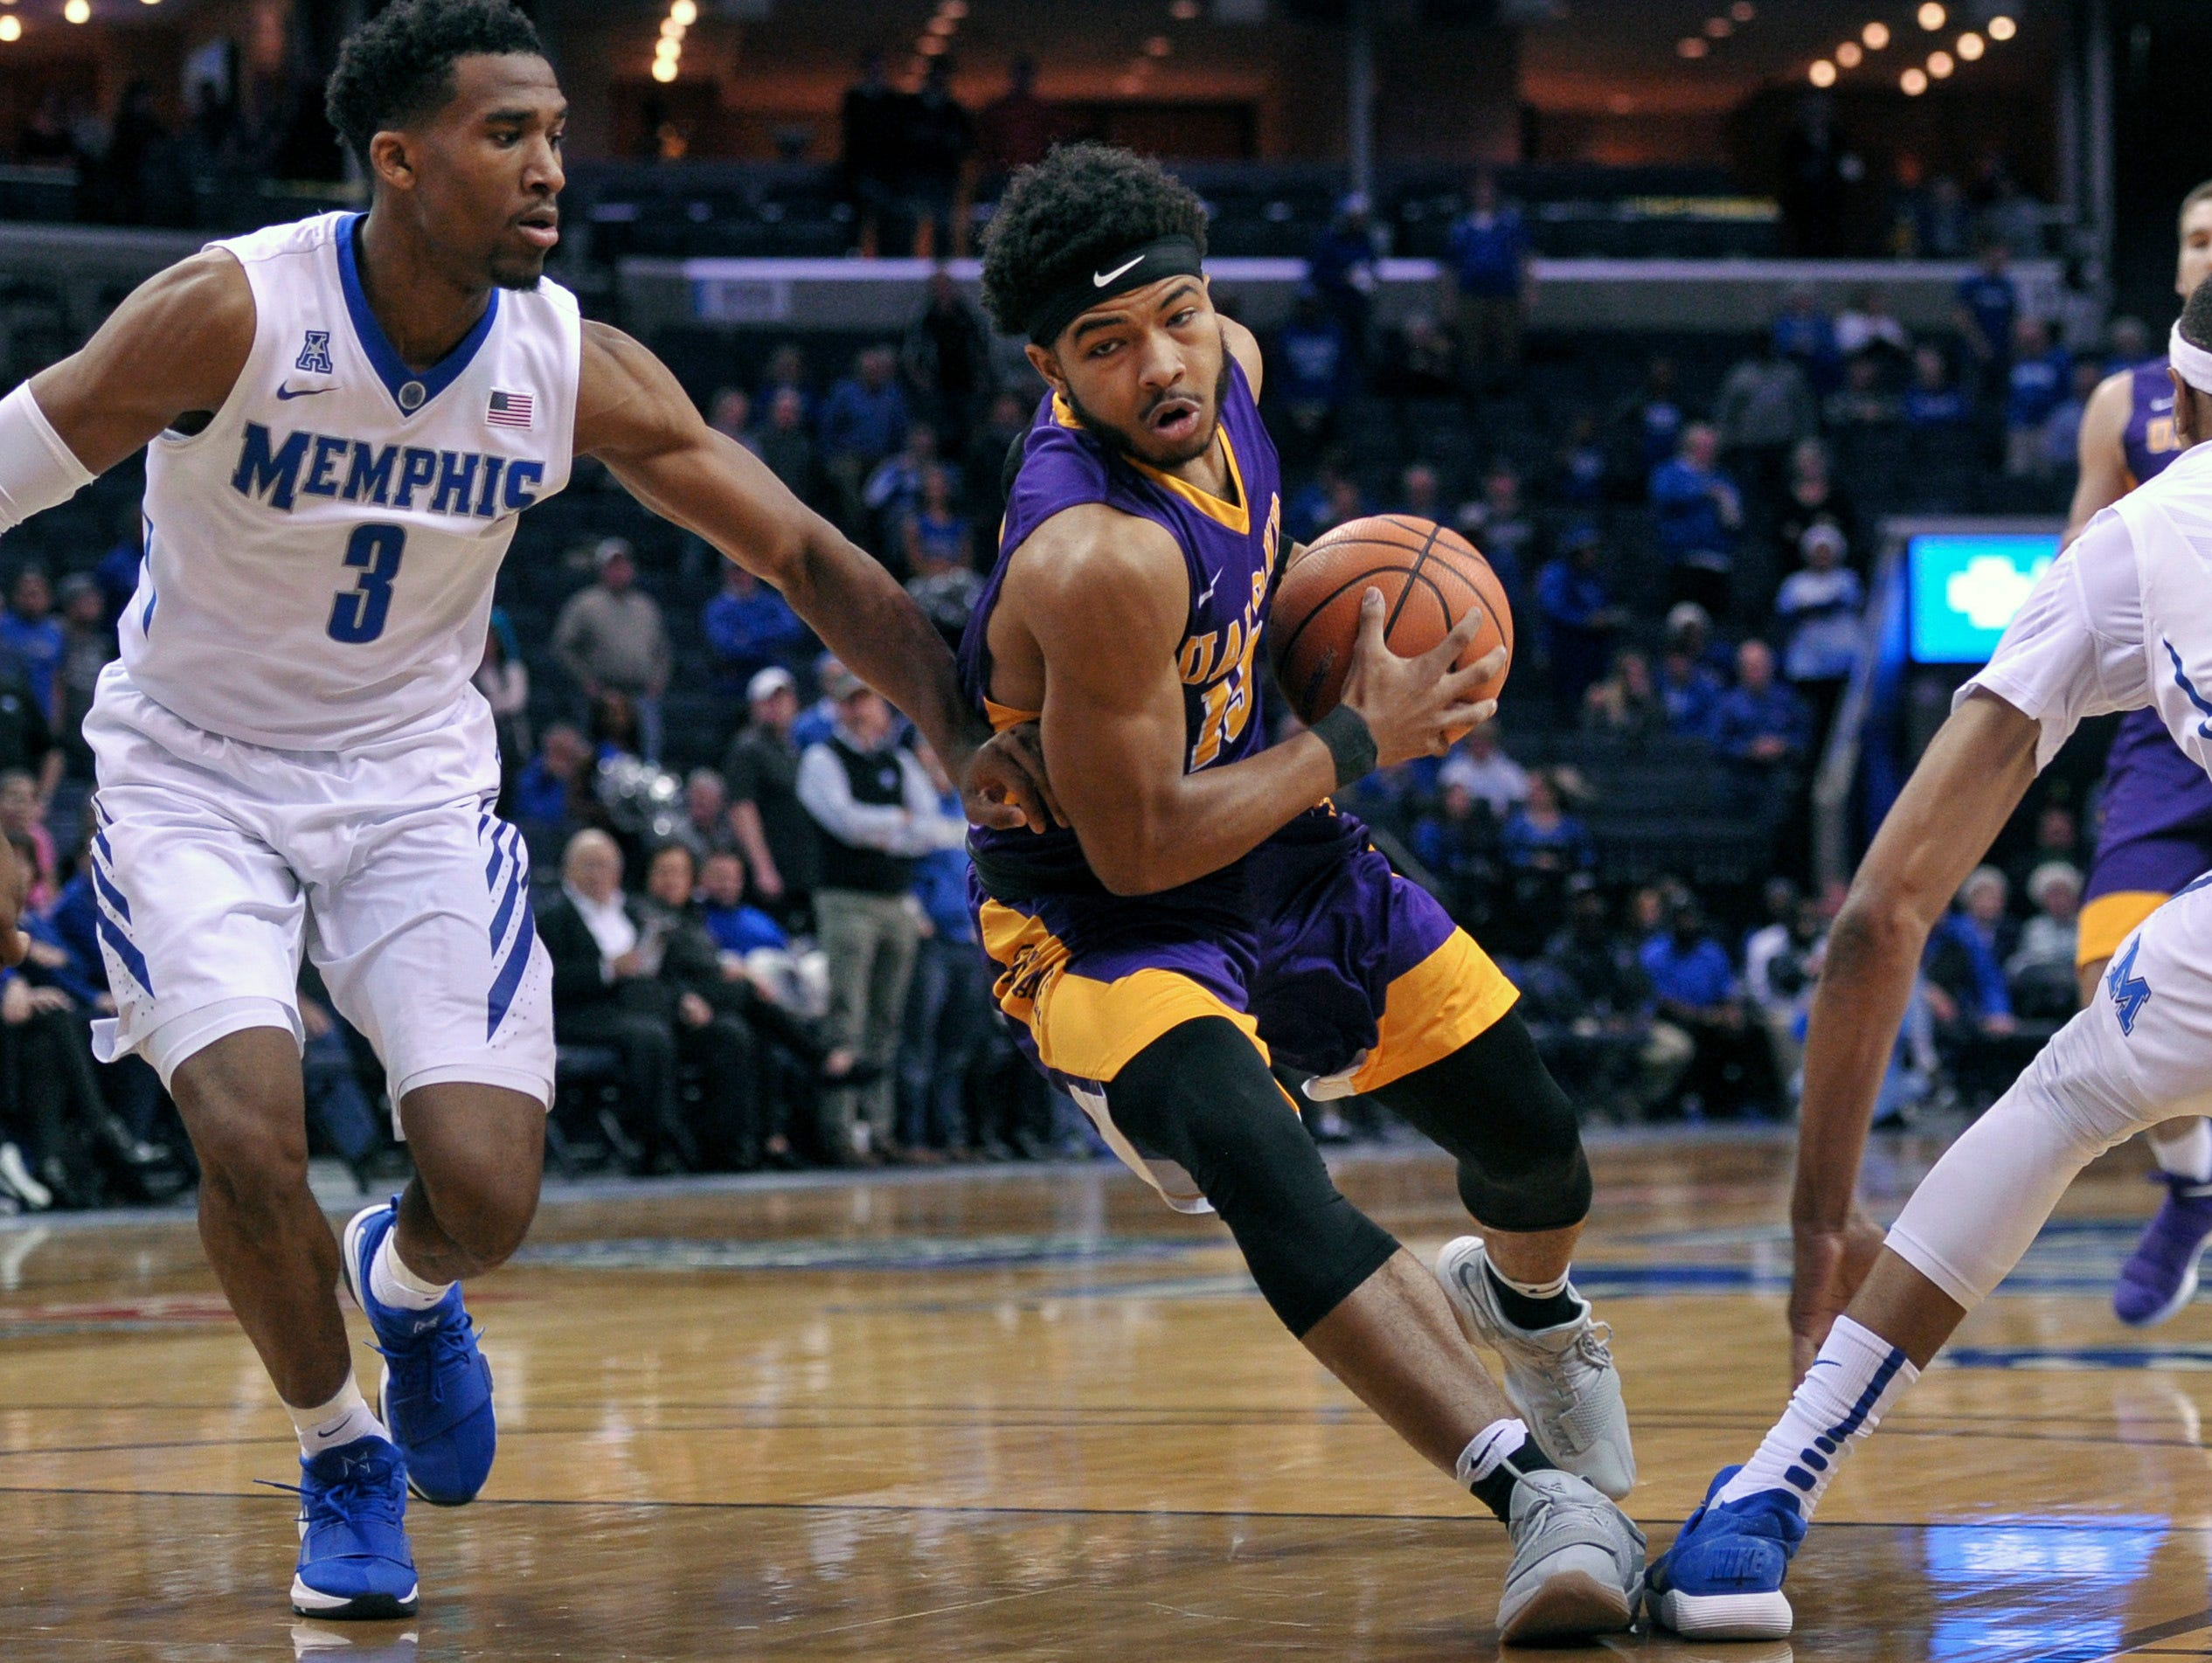 Dec 12, 2017; Memphis, TN, USA; Albany Great Danes guard David Nichols (13) goes to the basket against Memphis Tigers guard Jeremiah Martin (3) during the first half at FedExForum. Mandatory Credit: Justin Ford-USA TODAY Sports